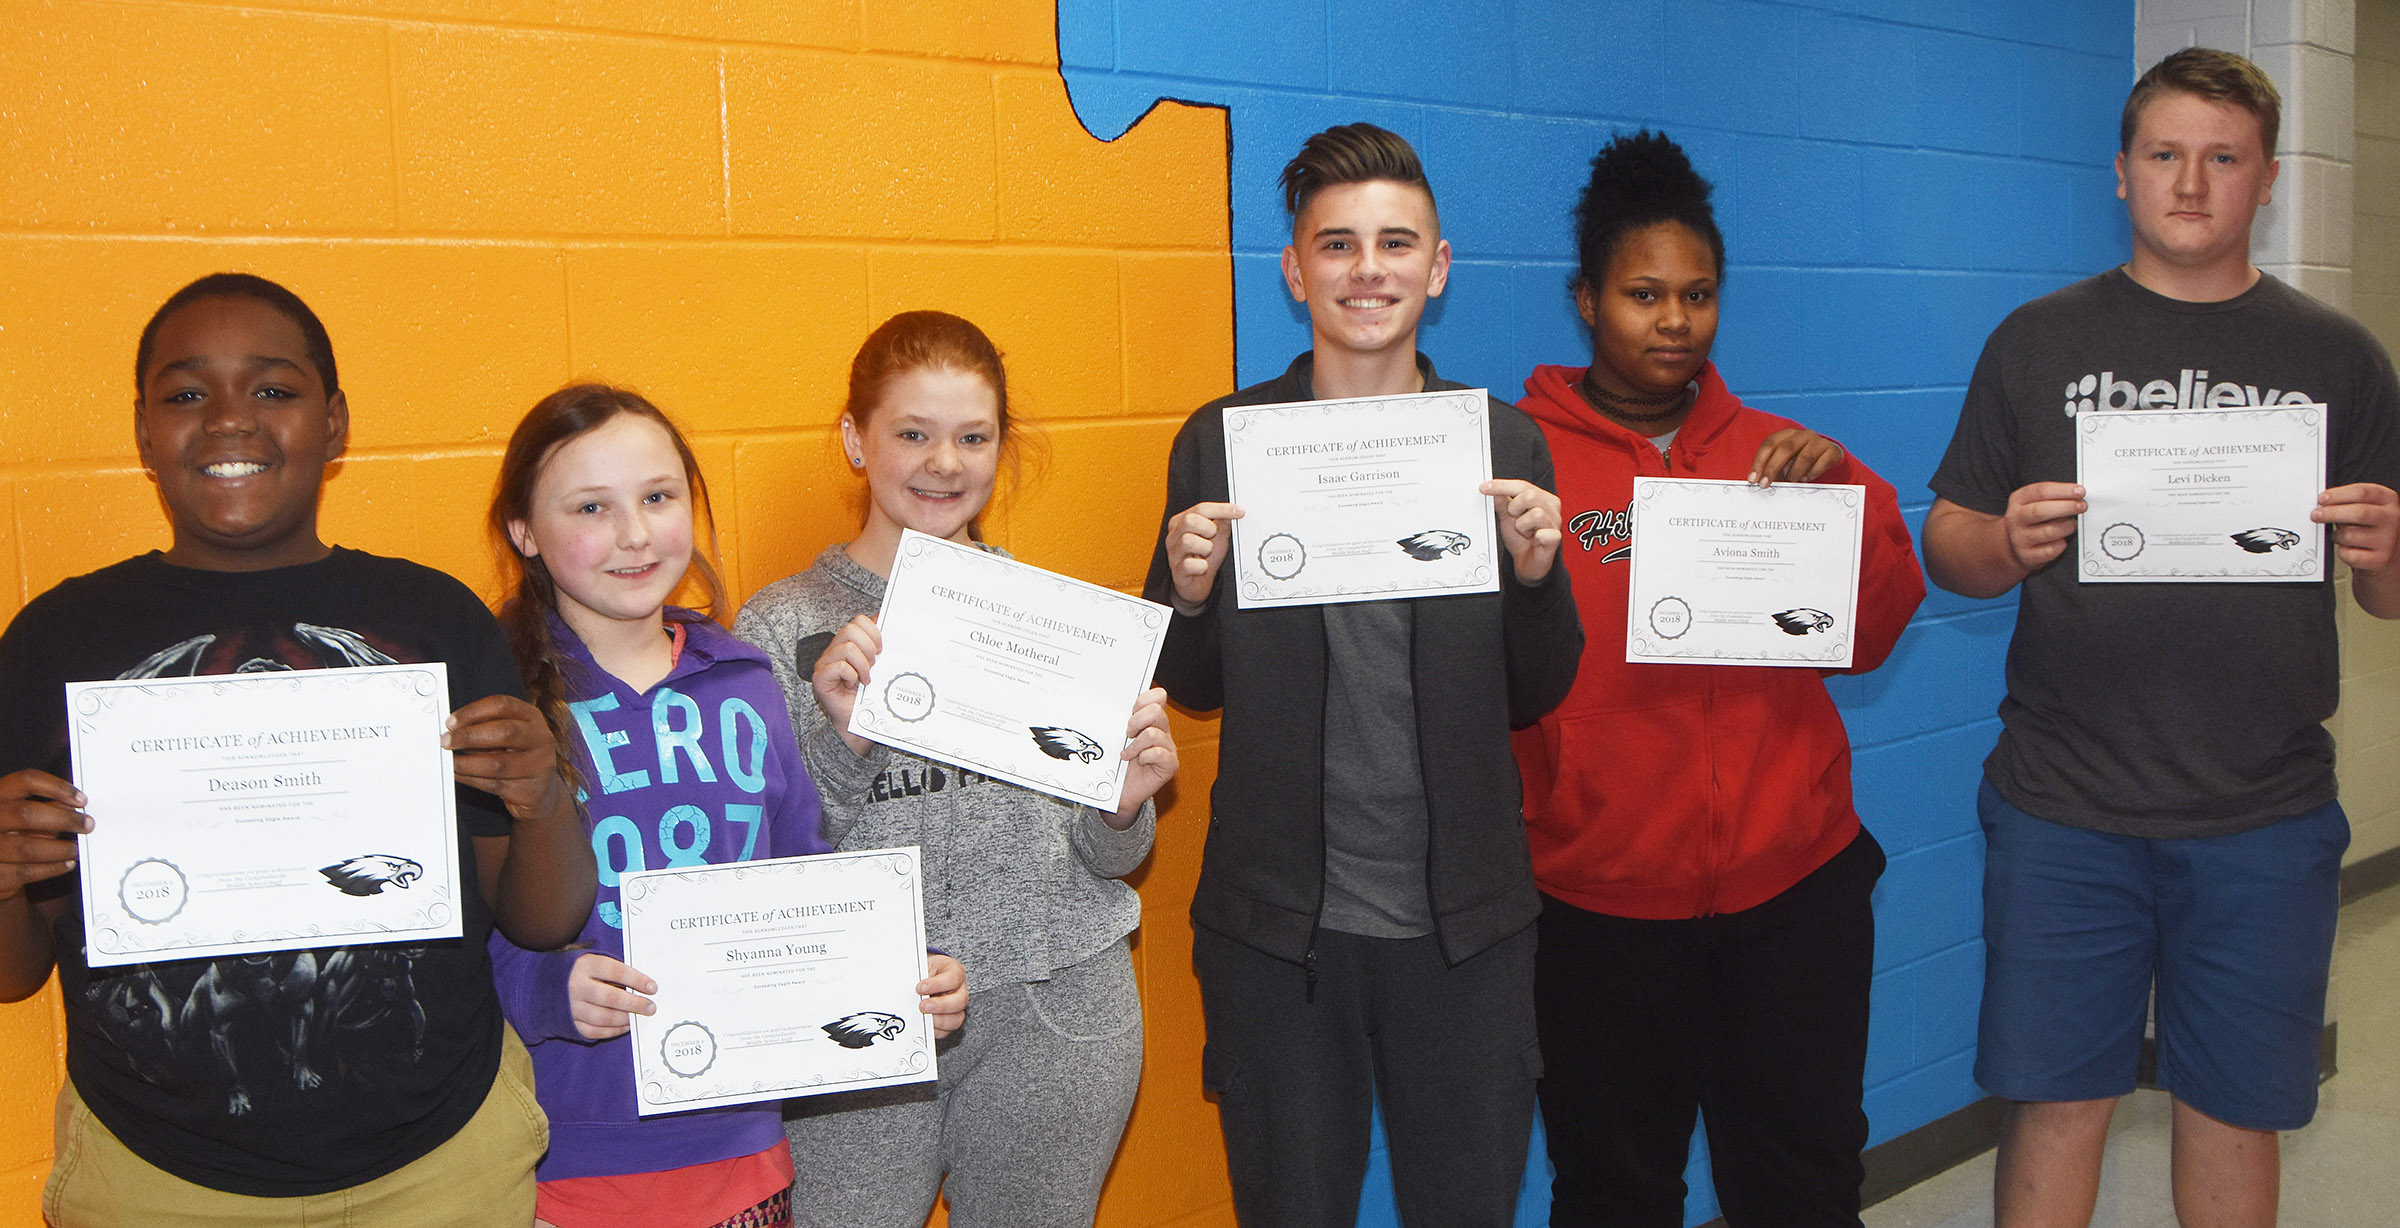 From left are sixth-graders Deason Smith and Shyanna Young, seventh-graders Chloe Motheral and Isaac Garrison and eighth-graders Aviona Smith and Jake Dicken.